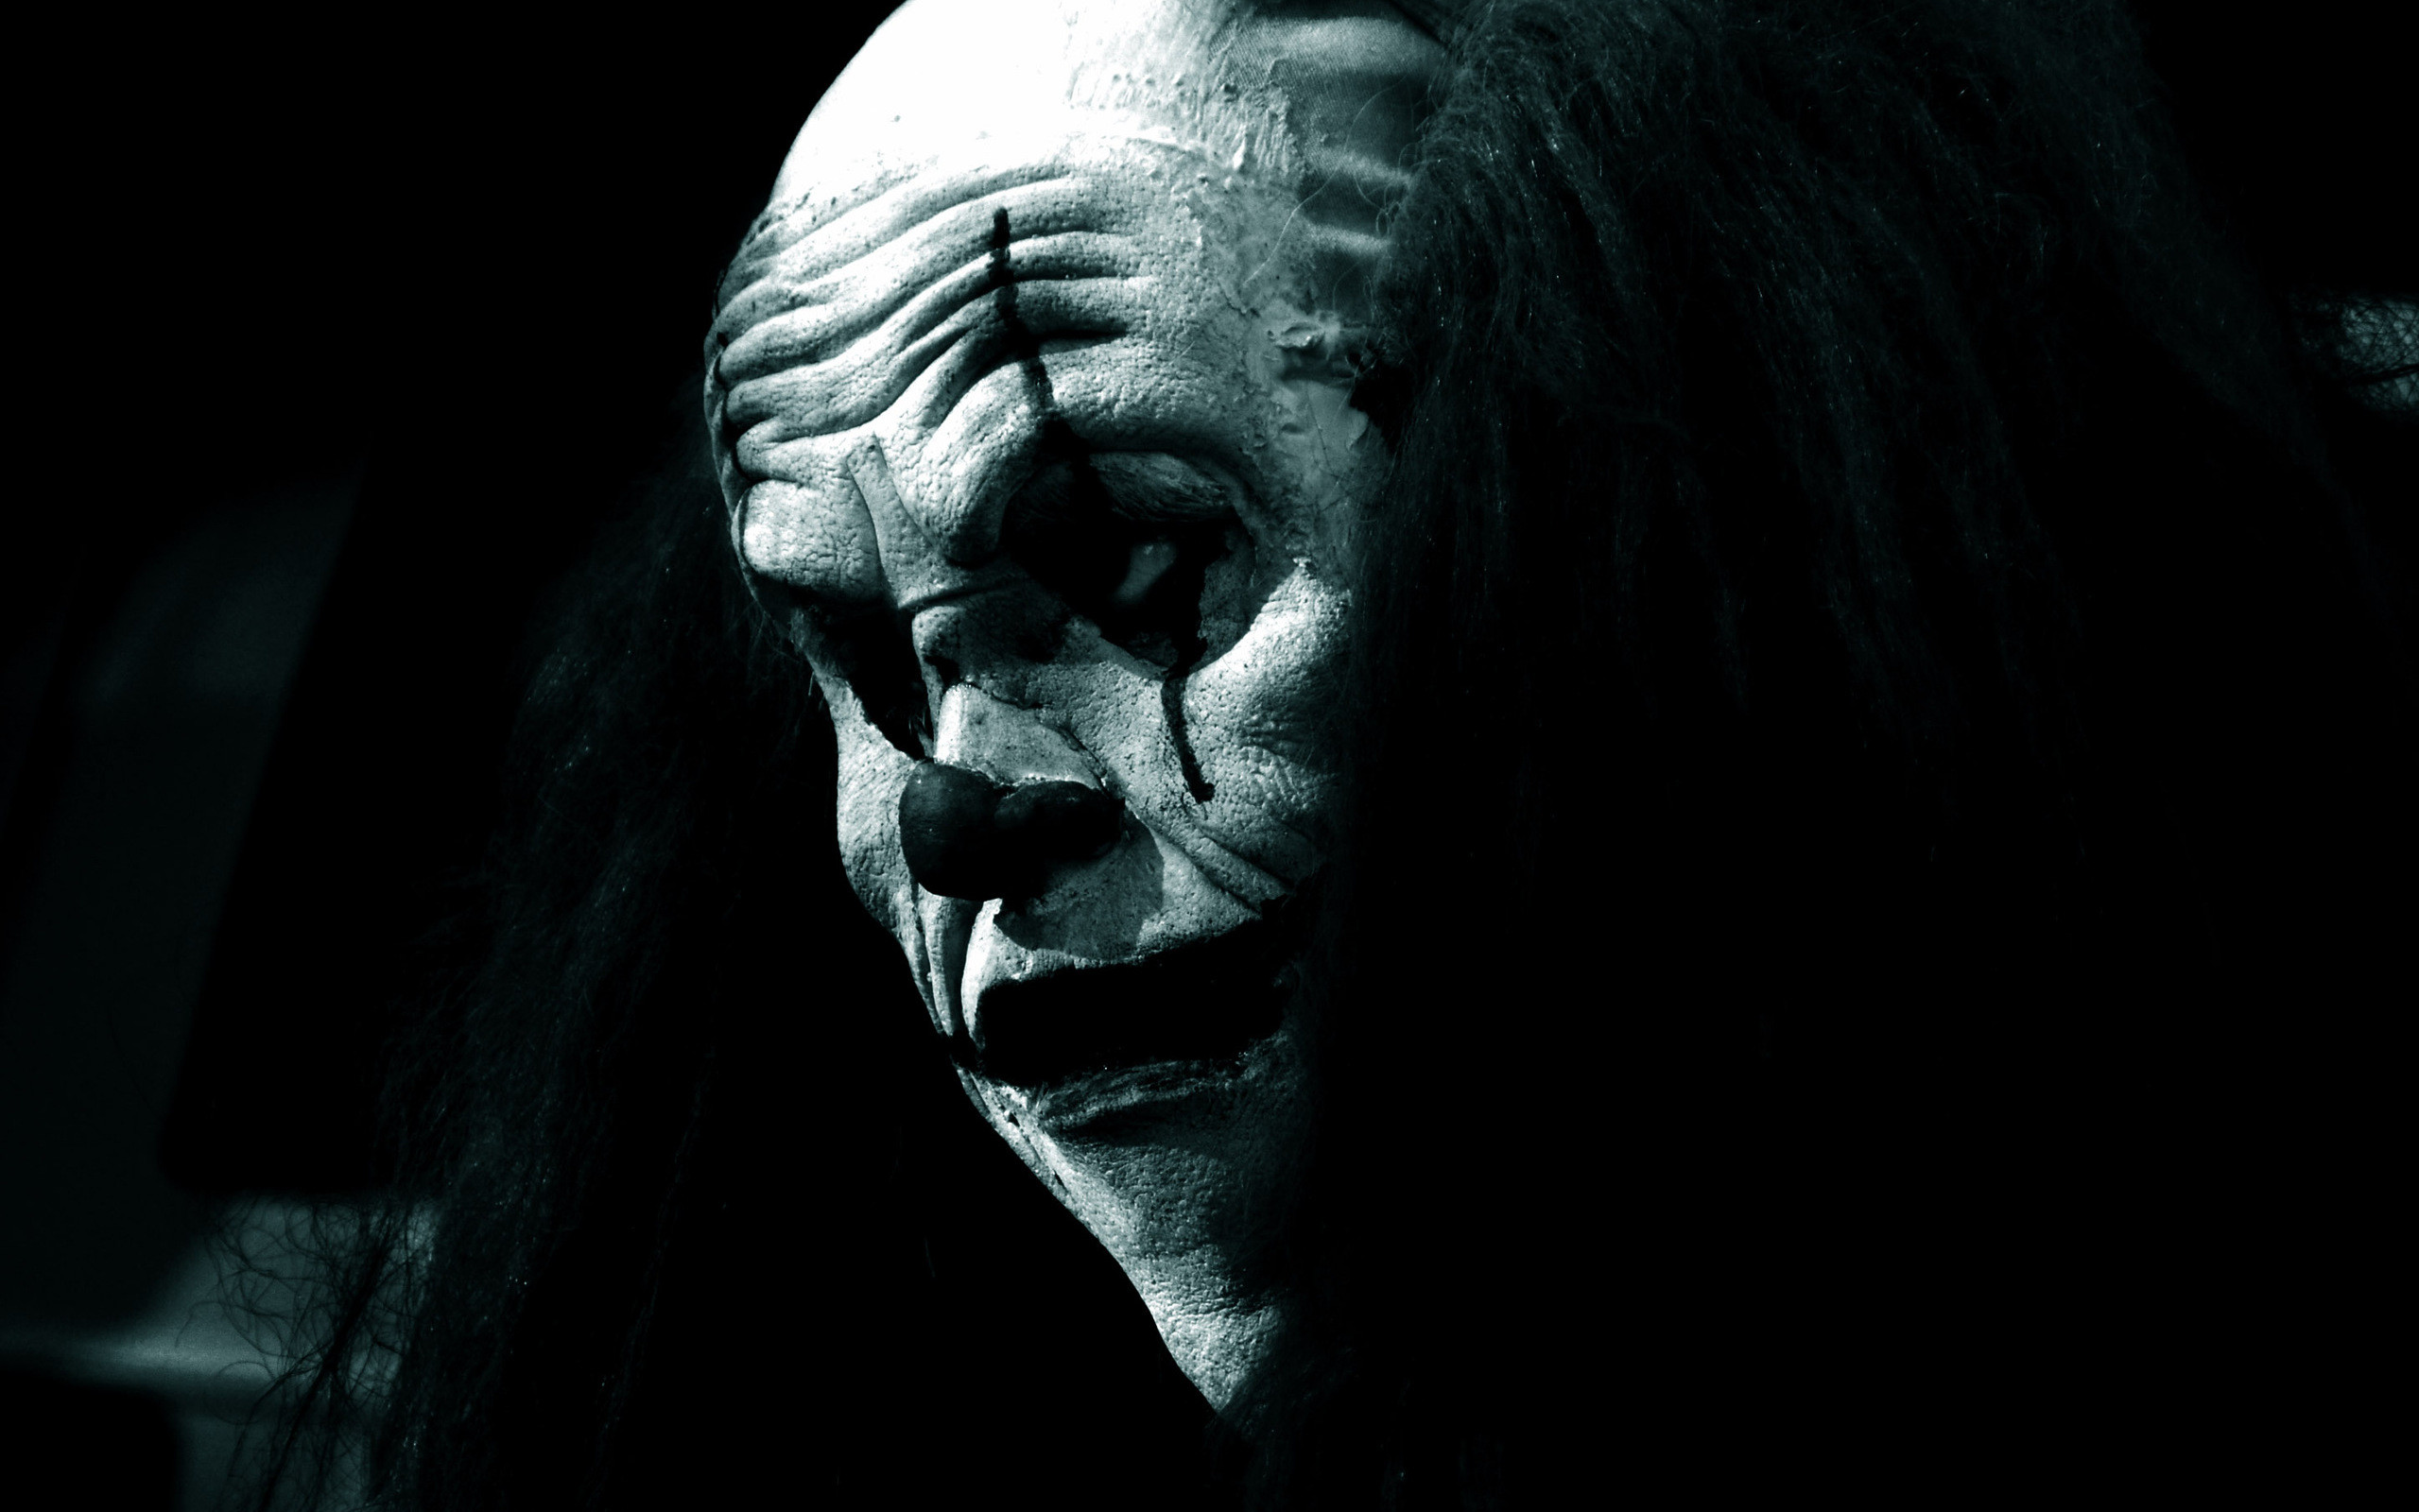 2559x1600 Scary clown wallpaper gothic. Wallpapers 3d for desktop, 3d pictures